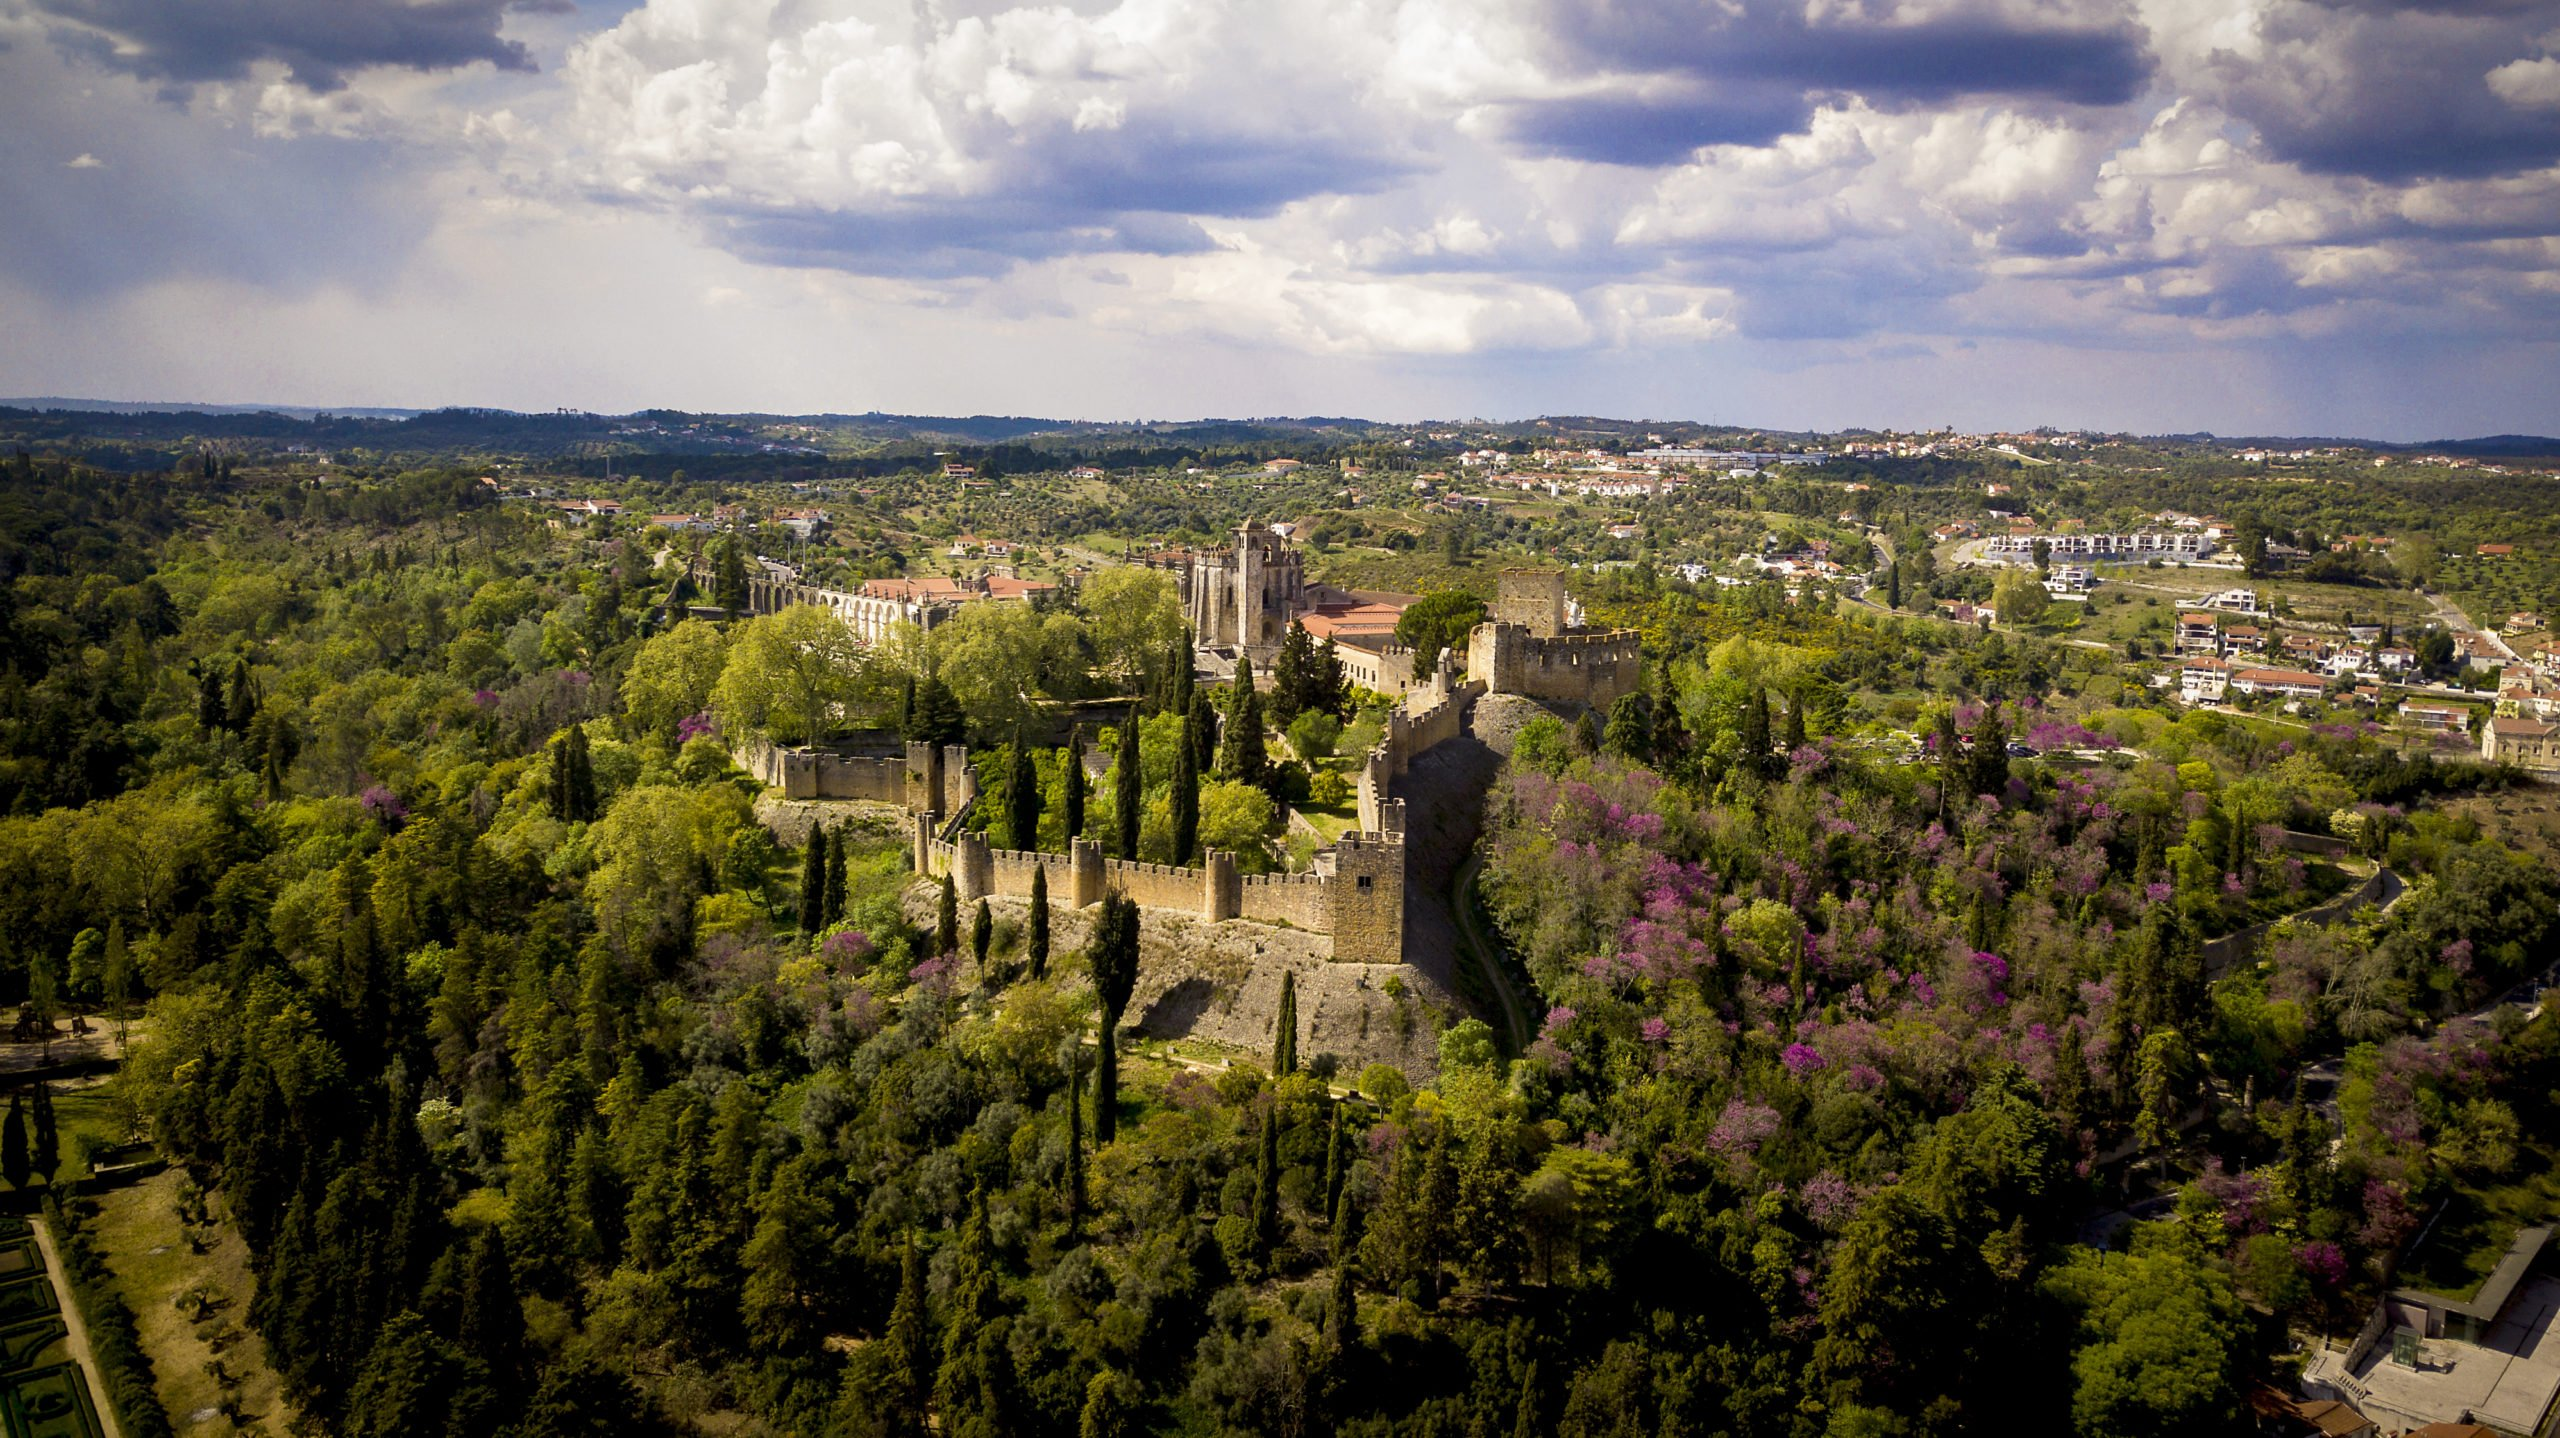 air view of the convent of christ and the castle of Tomar